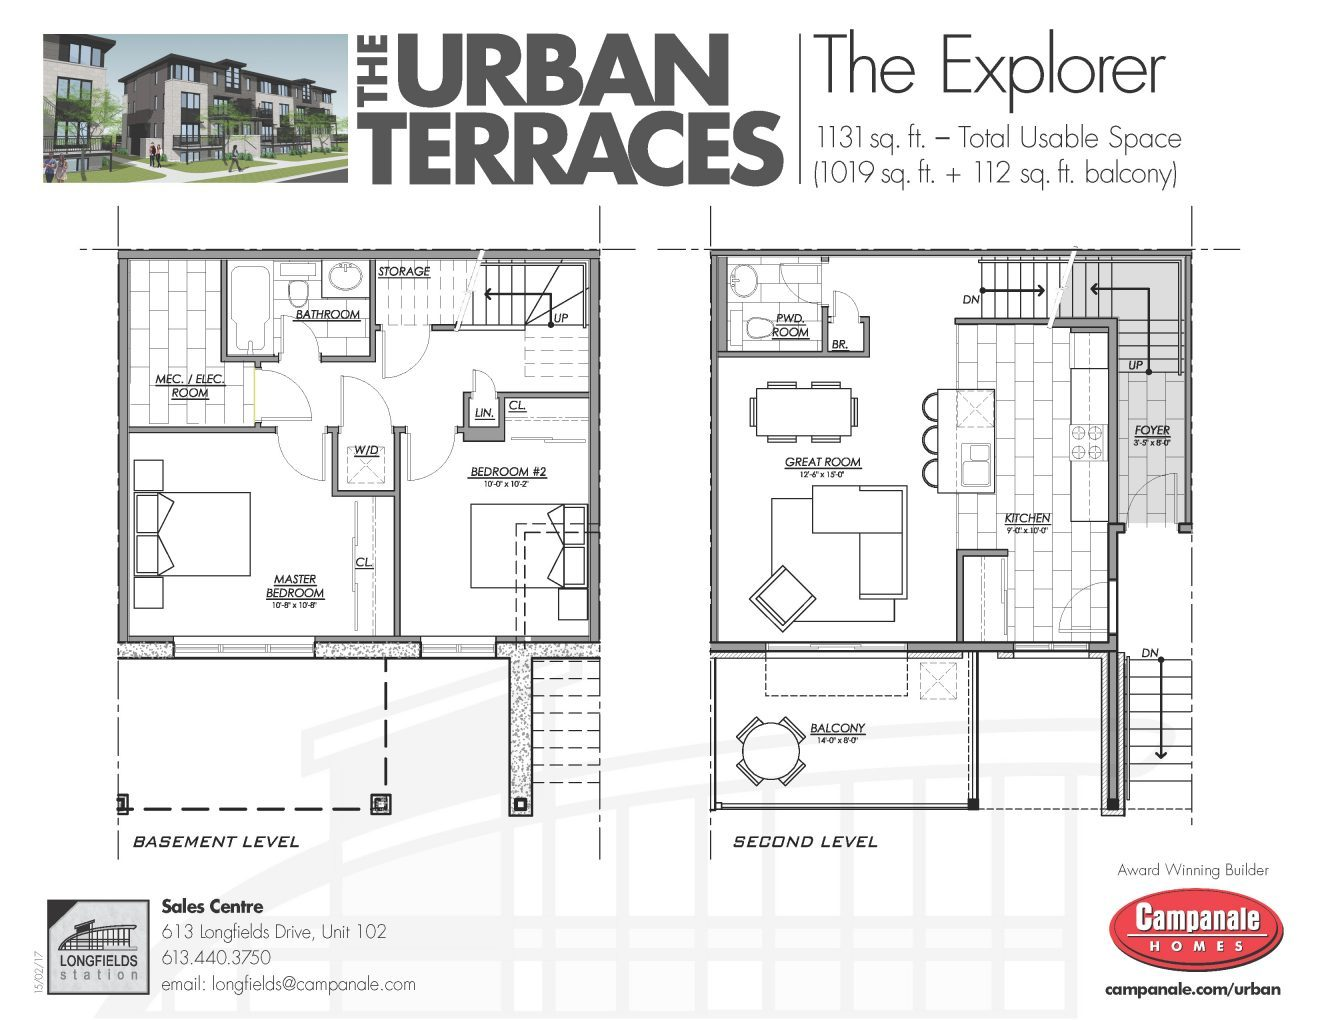 Explorer_Floorplan_Urban_Terrace_Campanale Homes